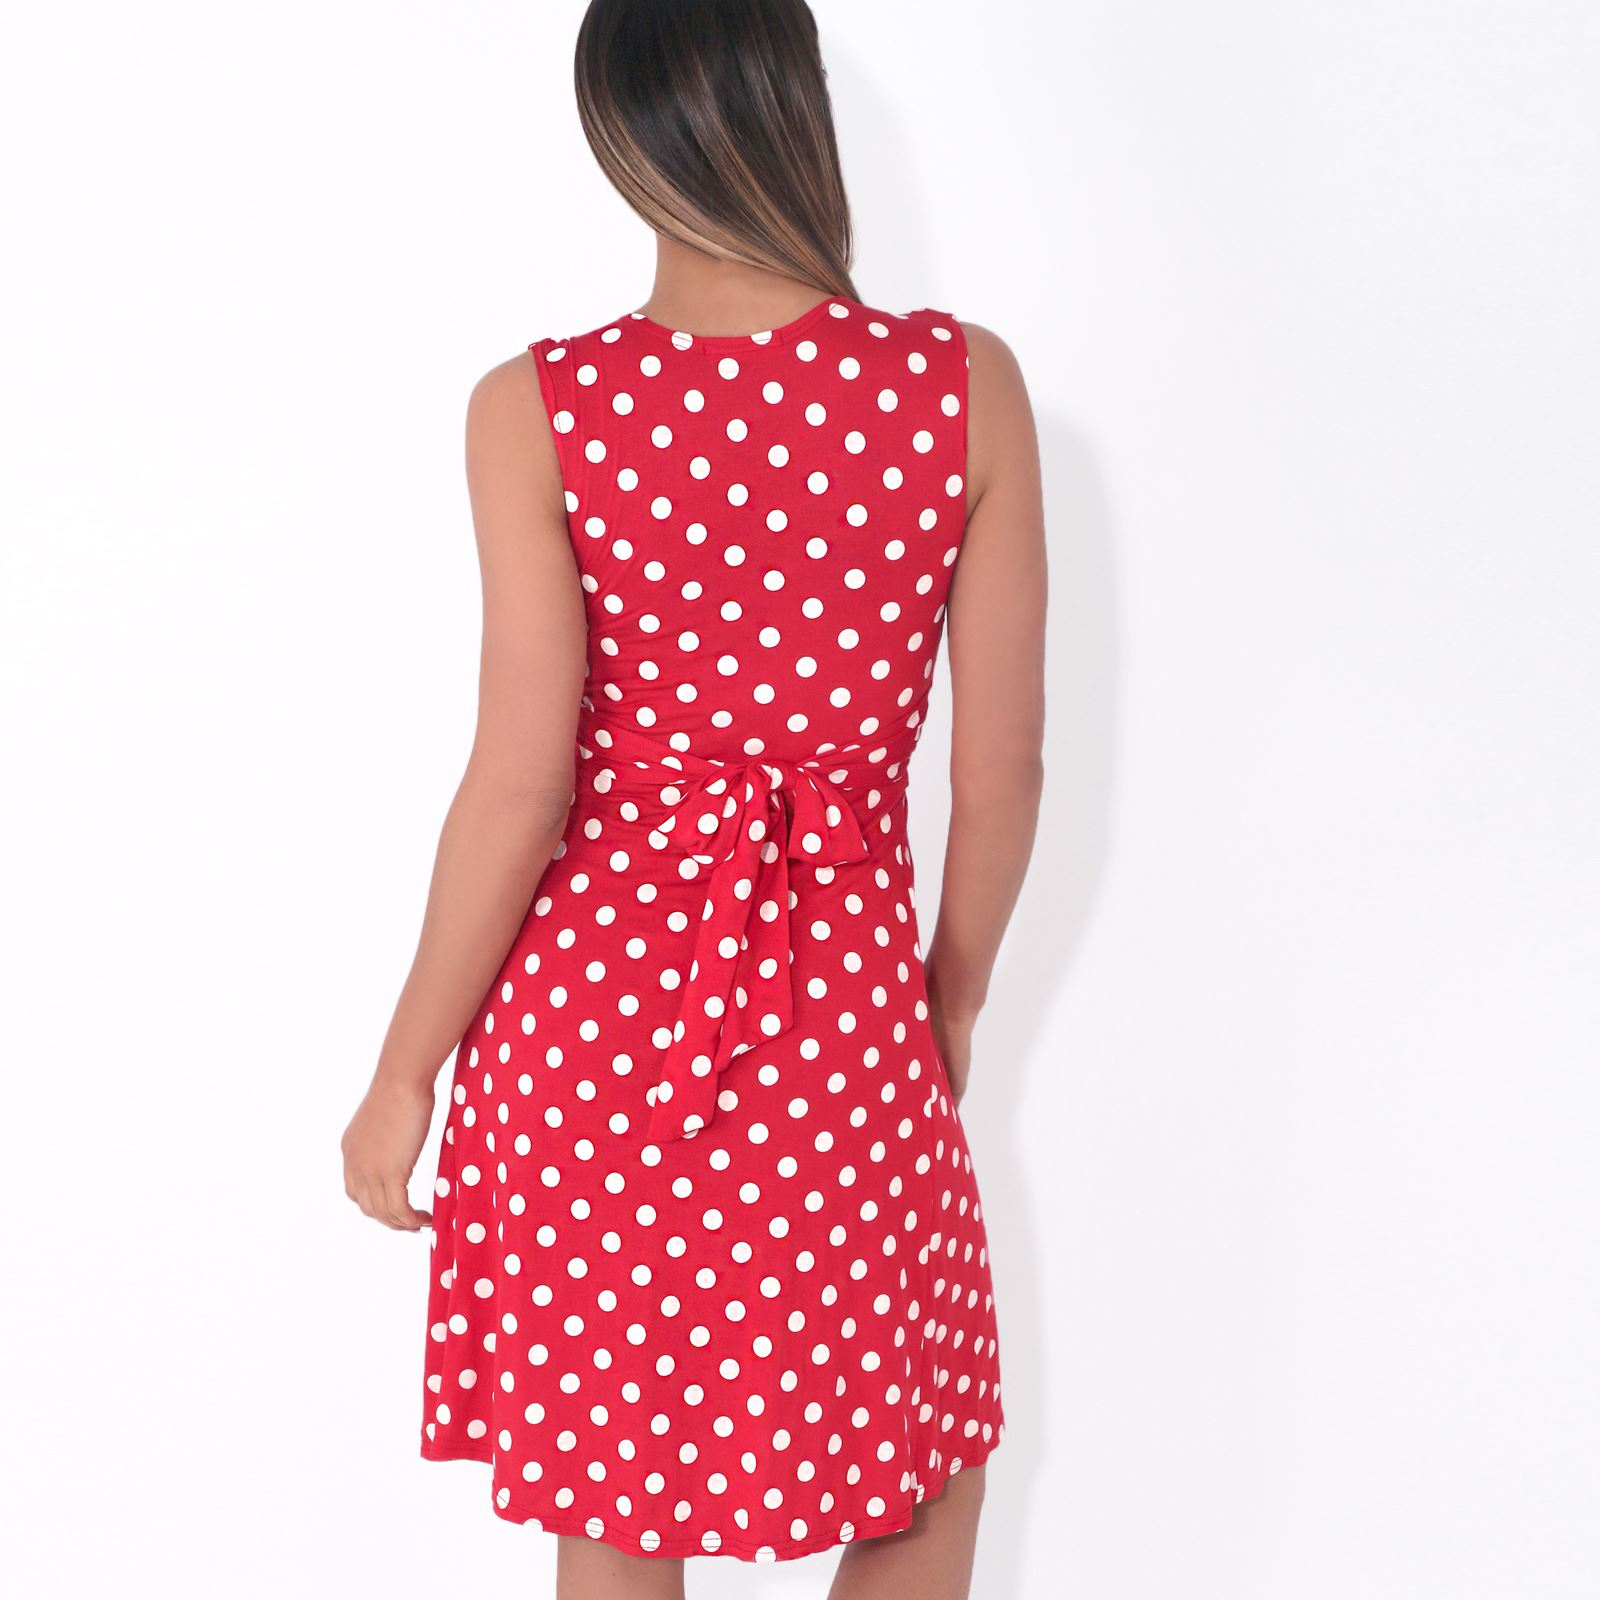 Womens-Polka-Dot-Retro-Dress-Pleated-Skirt-Wrap-Mini-V-Neck-Top-Swing-Party thumbnail 34